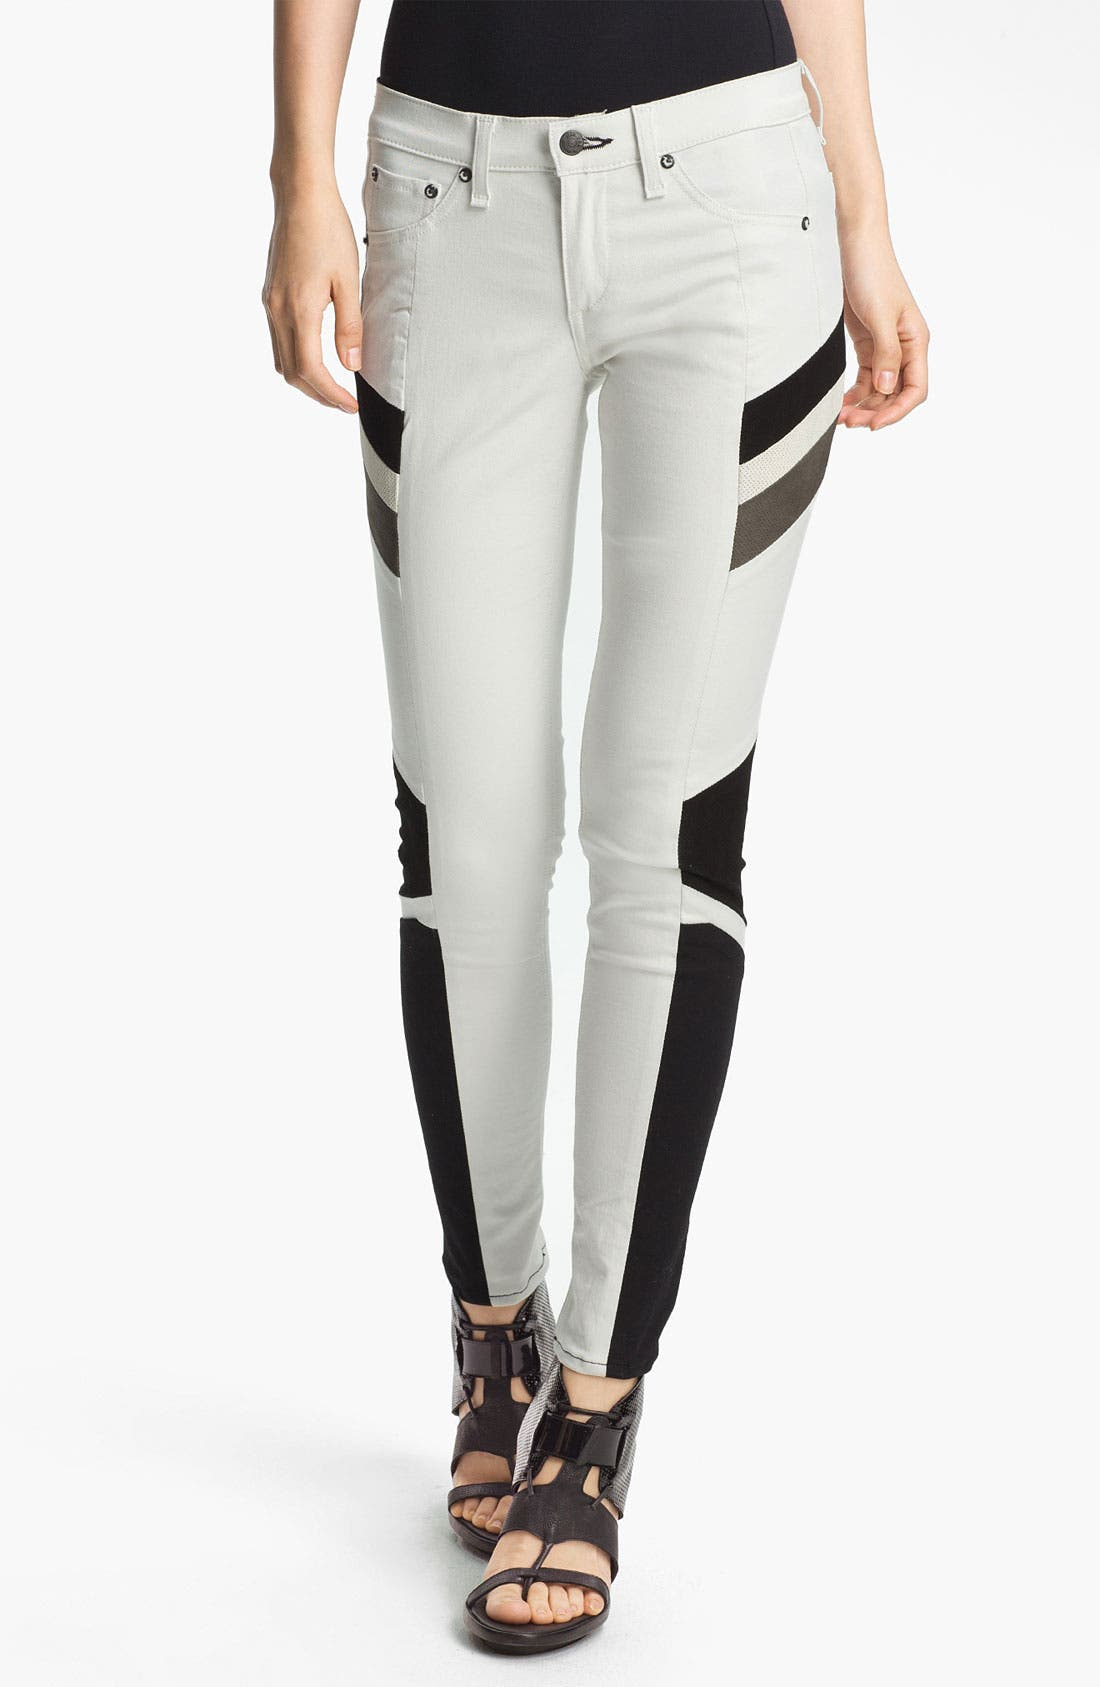 Alternate Image 1 Selected - rag & bone/JEAN 'Halifox' Leggings